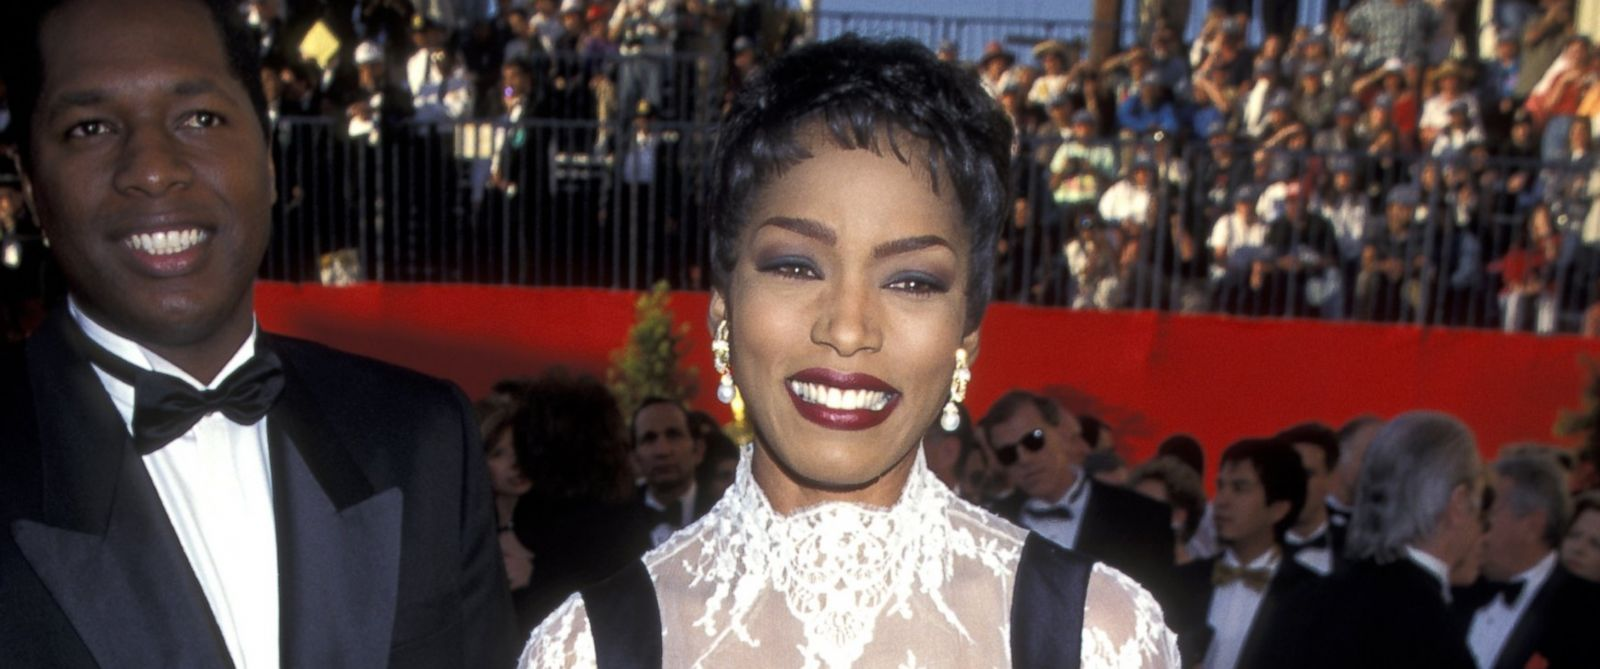 PHOTO: Wren Brown and Angela Bassett arrive at The 67th Annual Academy Awards on March 27, 1994 in Los Angeles.